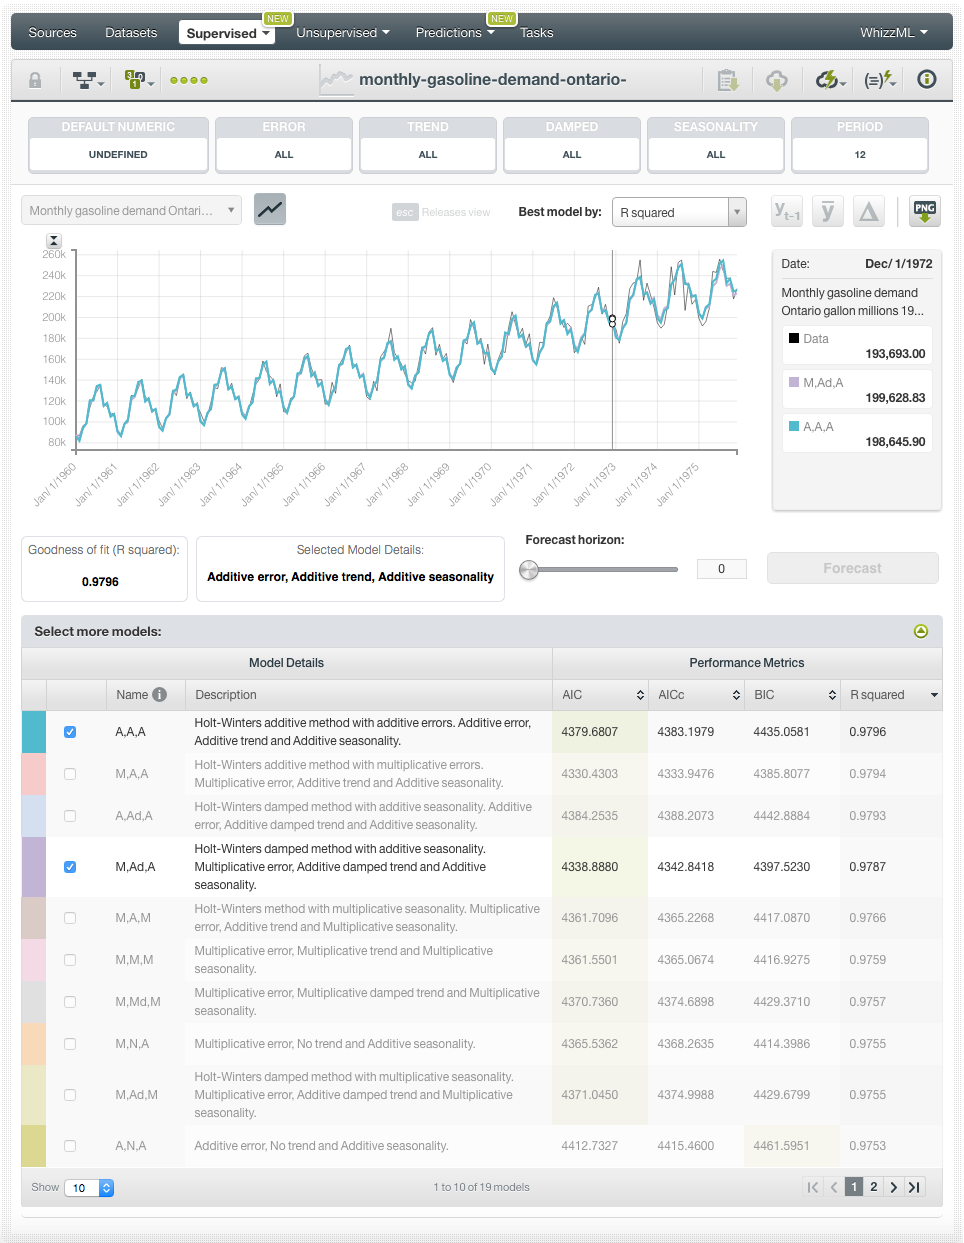 Creating your First Time Series Model with BigML's Dashboard